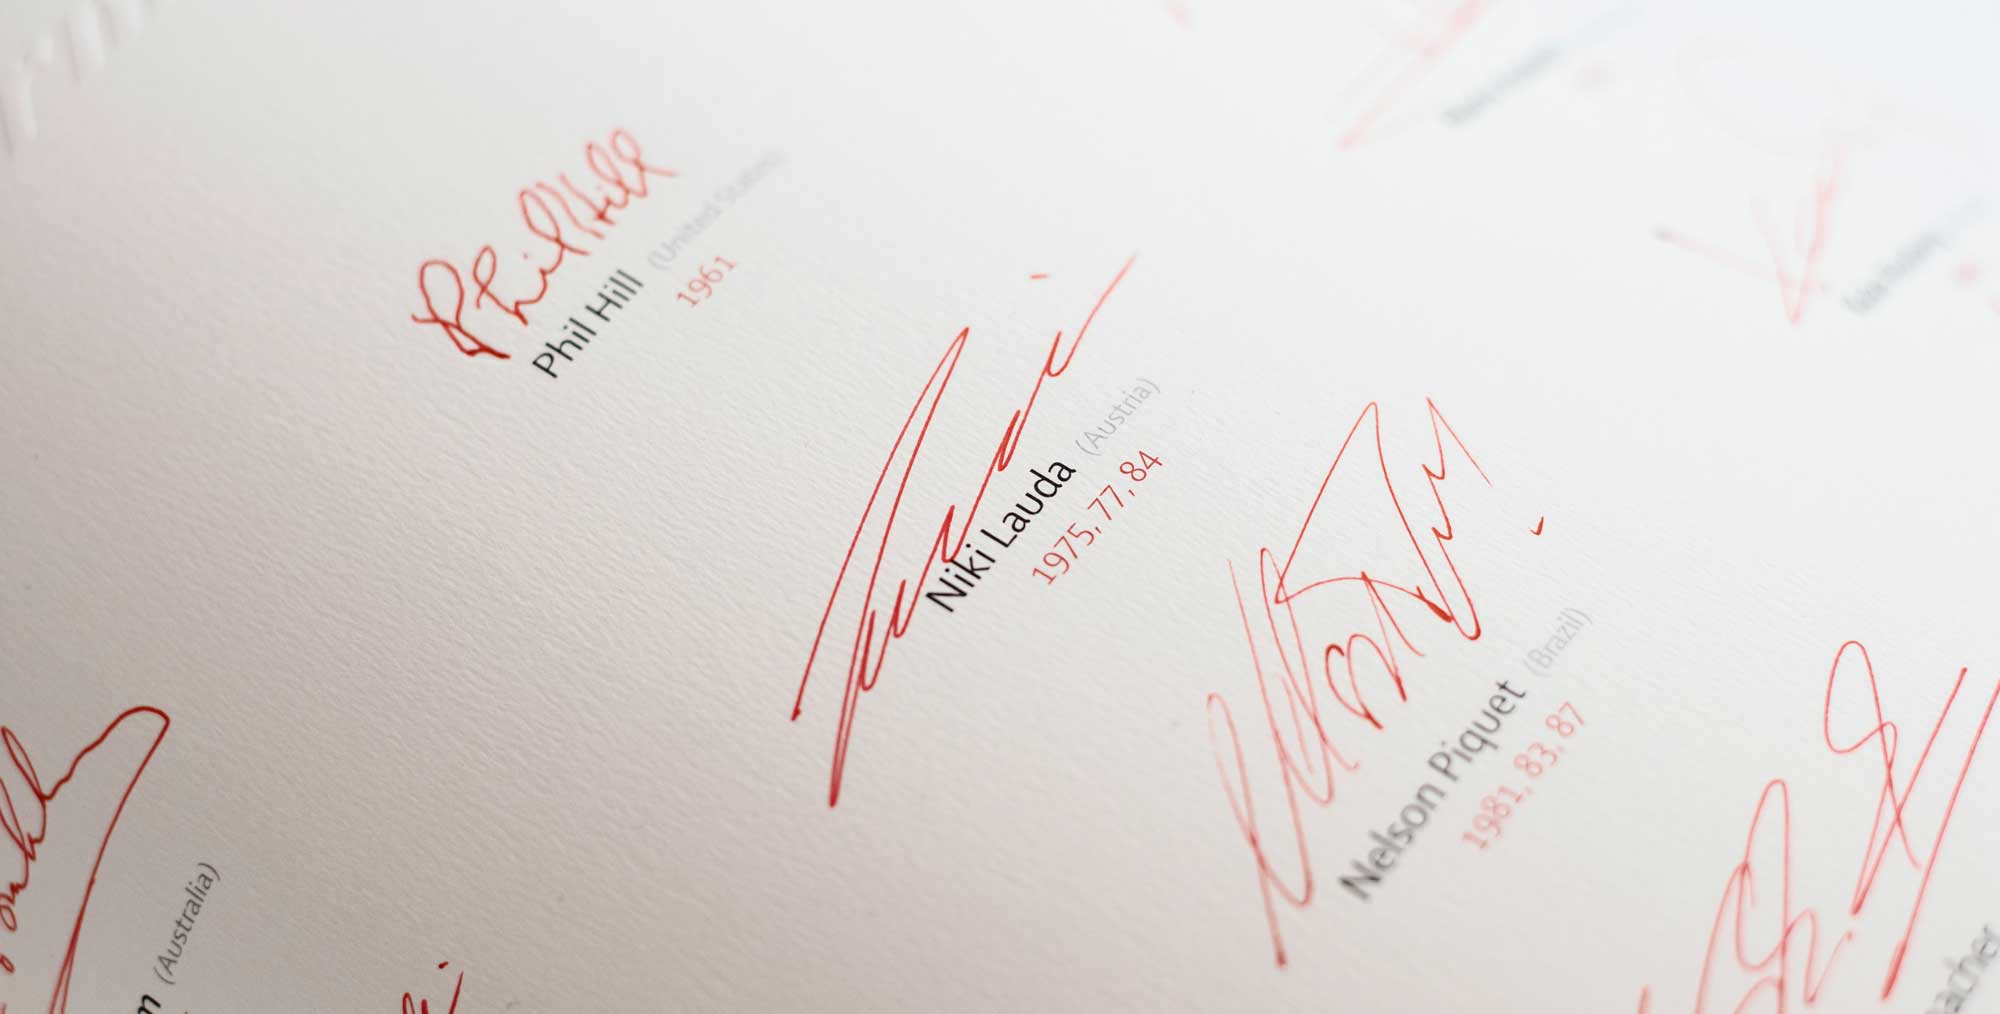 Niki Lauda's signature on The Official Formula 1 Opus, Champion Edition